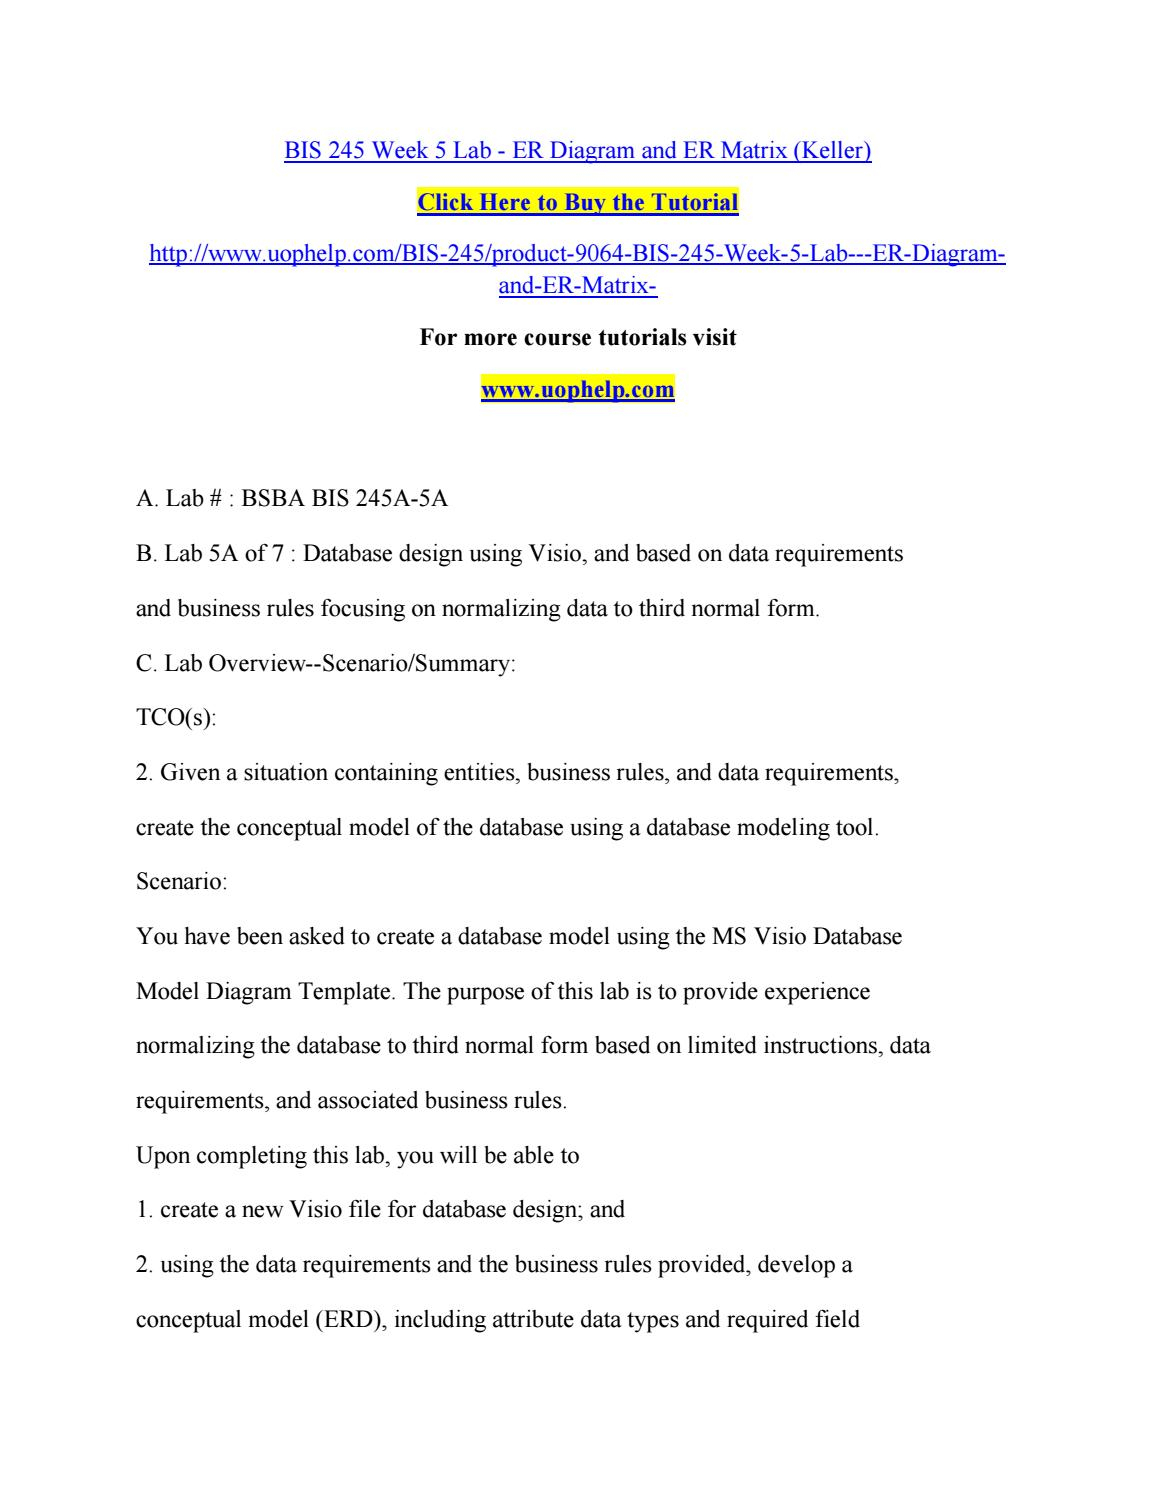 Bis 245 Week 5 Lab Er Diagram And Er Matrixreddy12 - Issuu pertaining to Er Diagram Business Rules